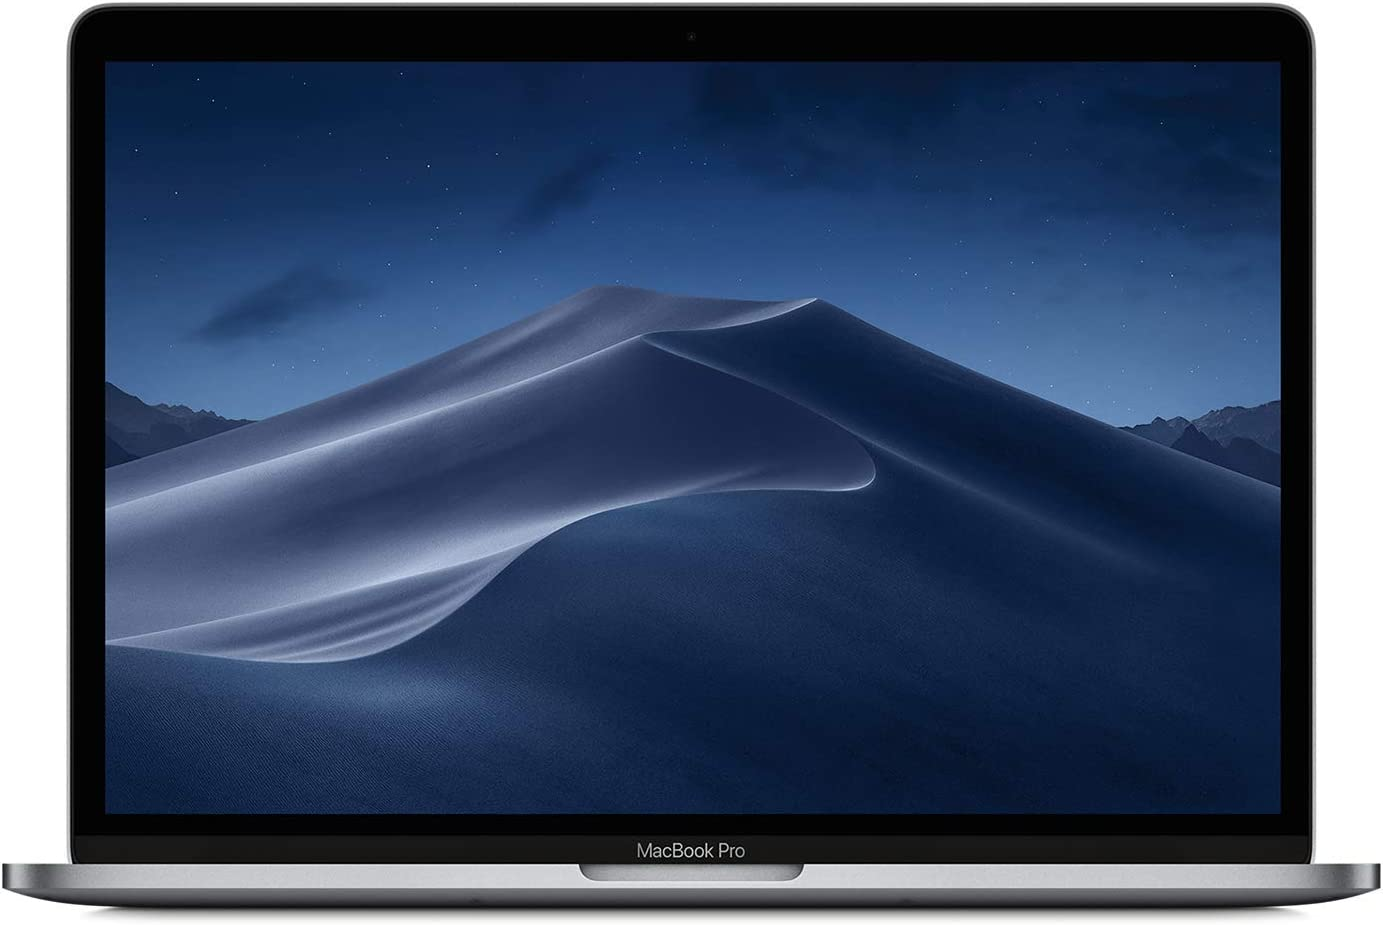 "Apple 13"" MacBook Pro Retina, Touch Bar, 2.3GHz Quad-Core Intel Core i5, 8GB RAM, 256GB SSD - Space Gray (Renewed)"